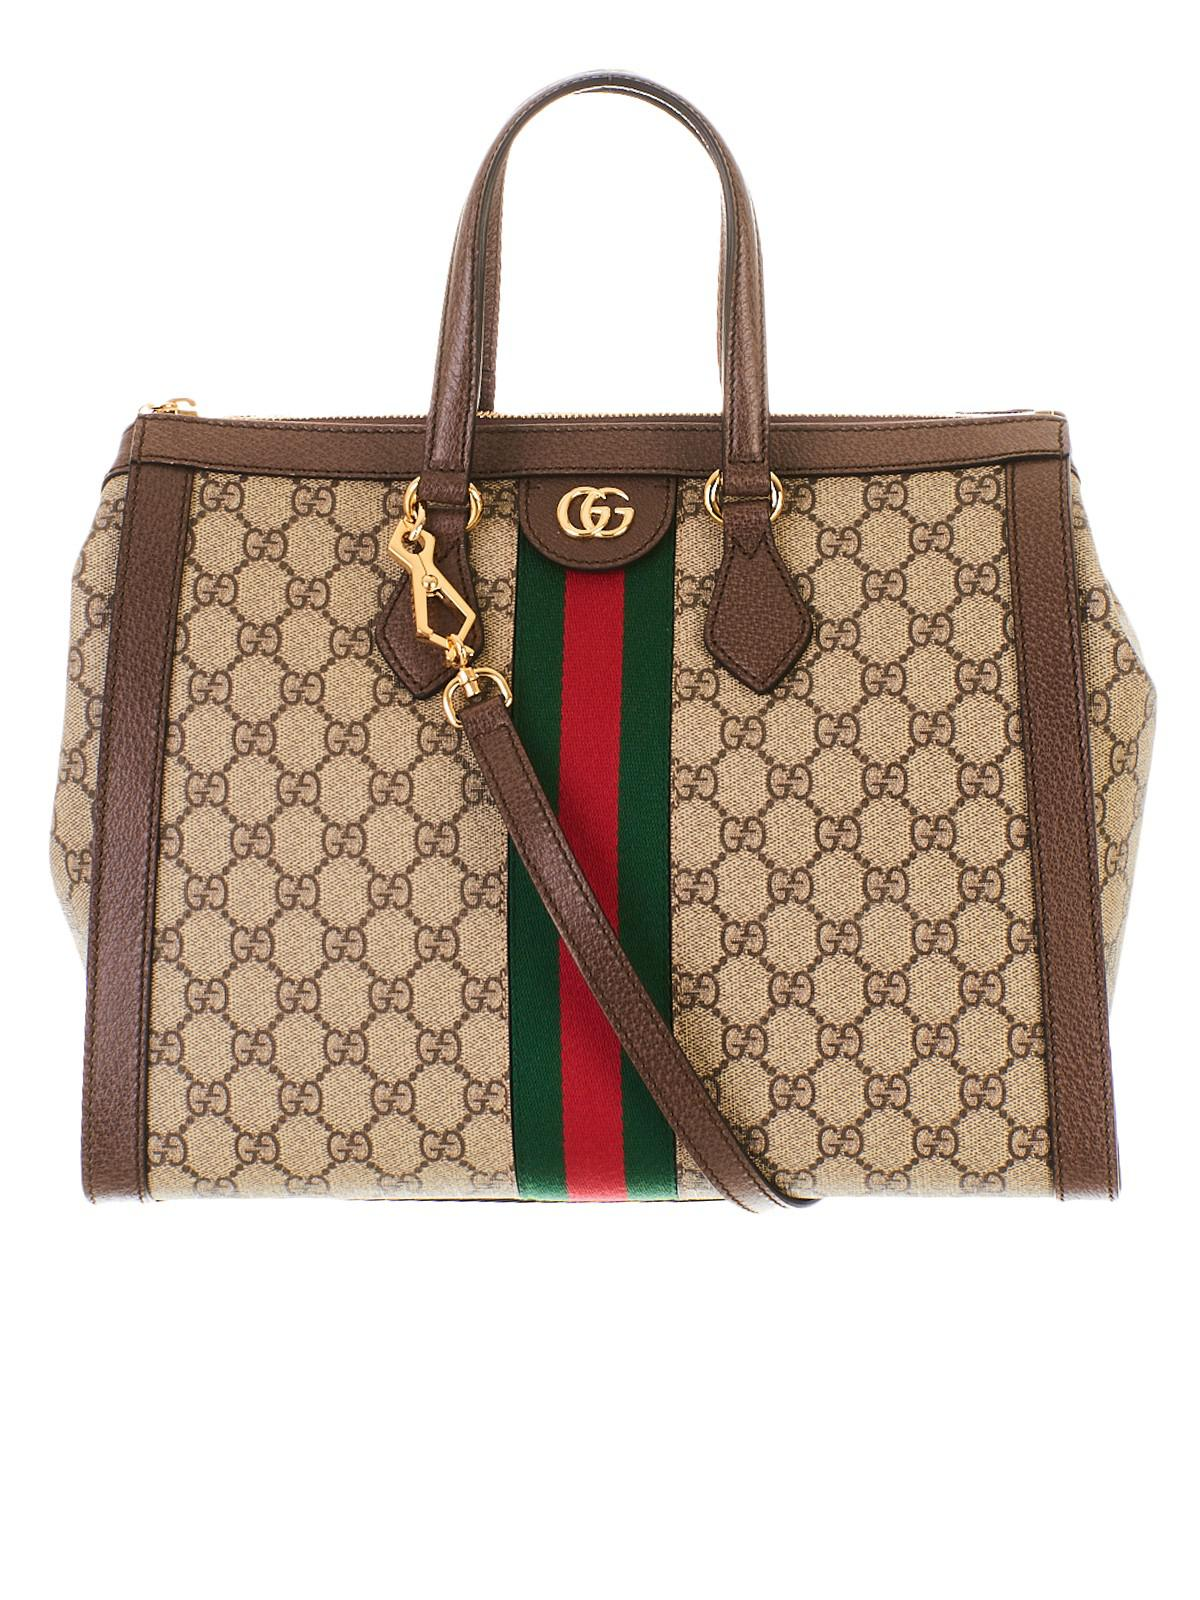 db87ef3de320 Lyst - Gucci GG Supreme Fabric And Leather Bag